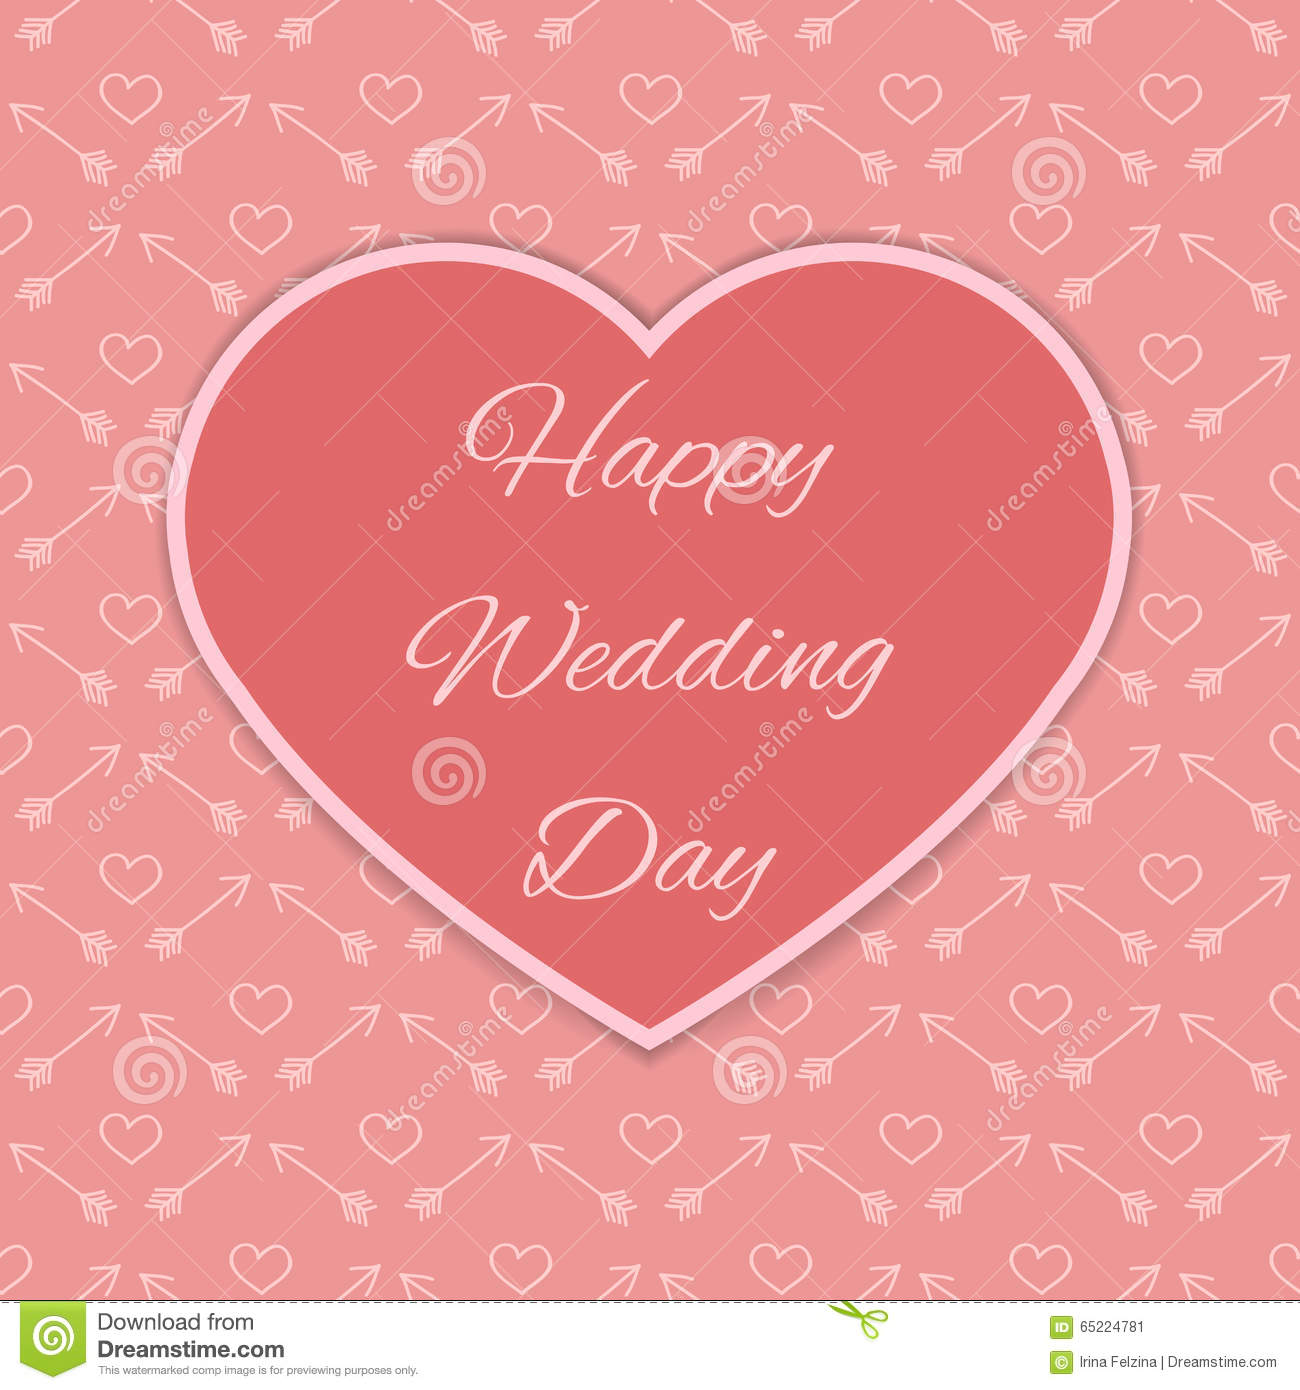 Happy Wedding Day Card Stock Vector. Illustration Of